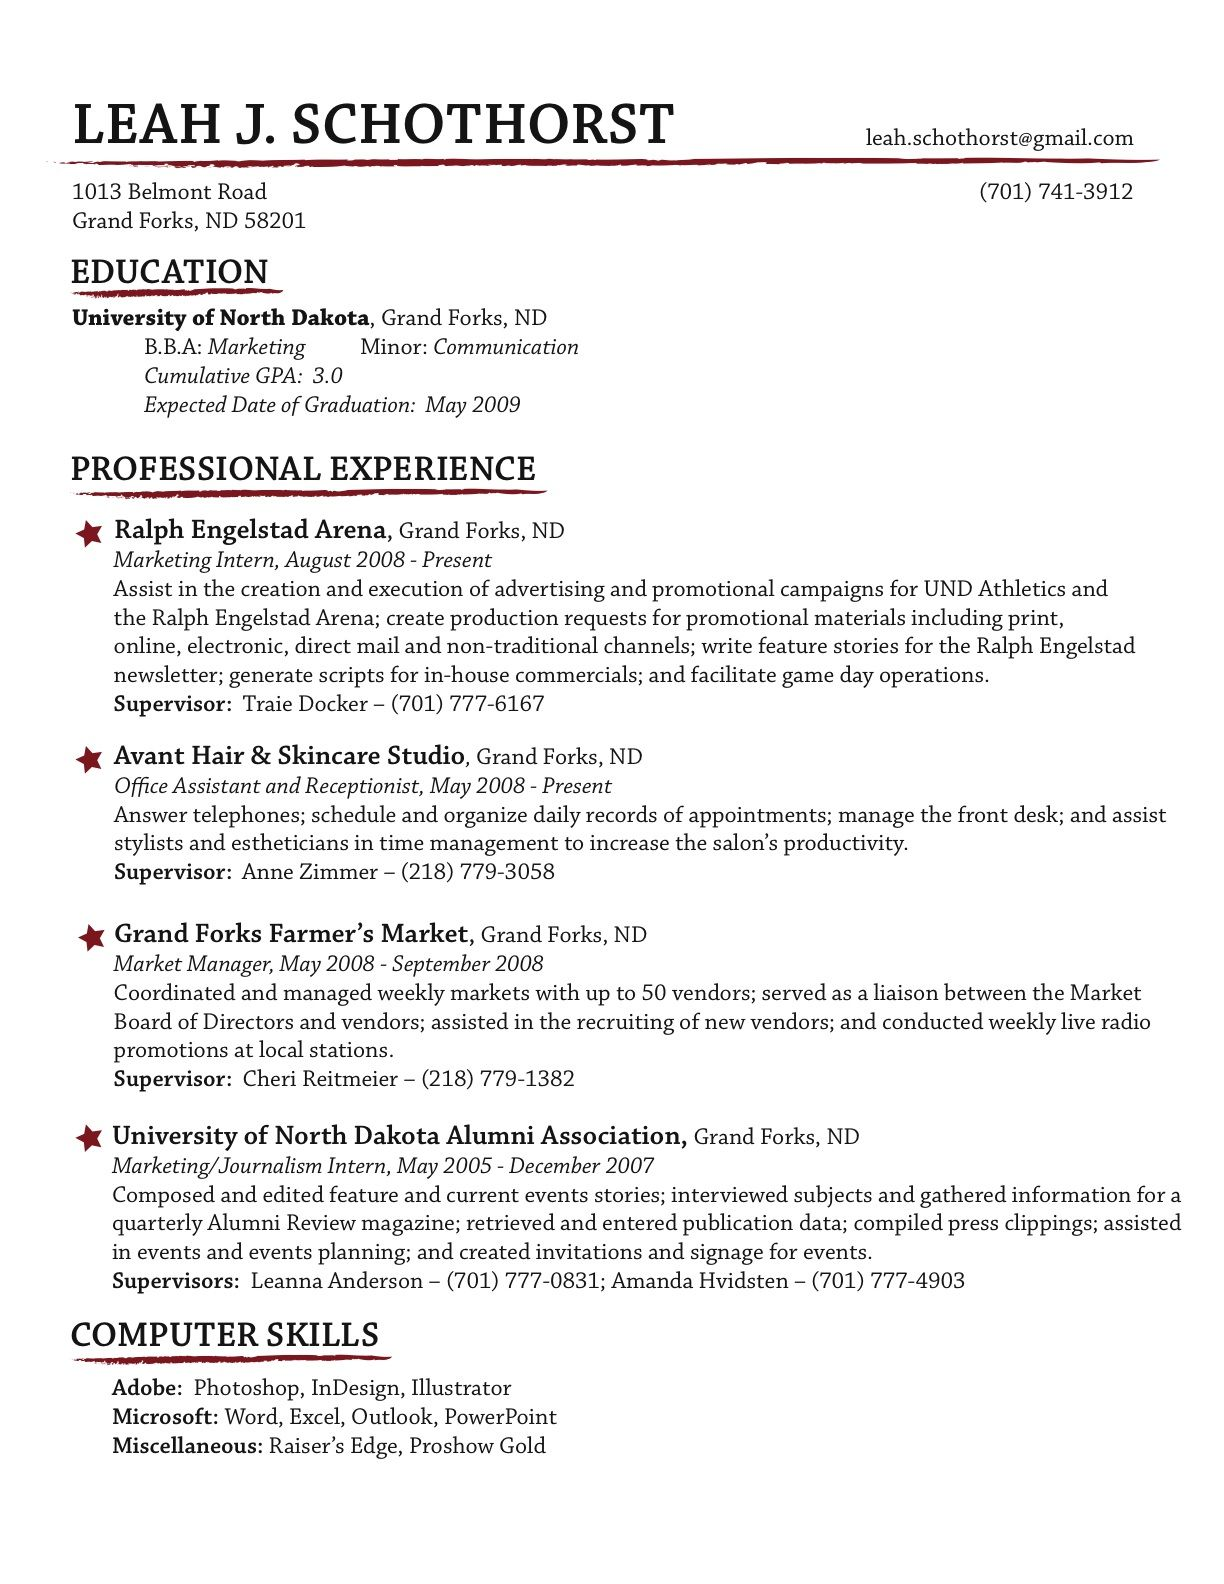 Business Systems Analyst Resume Sample Resume : Make A Resume Website Cover  Letter Or Resume Online .  Help Me Make A Resume